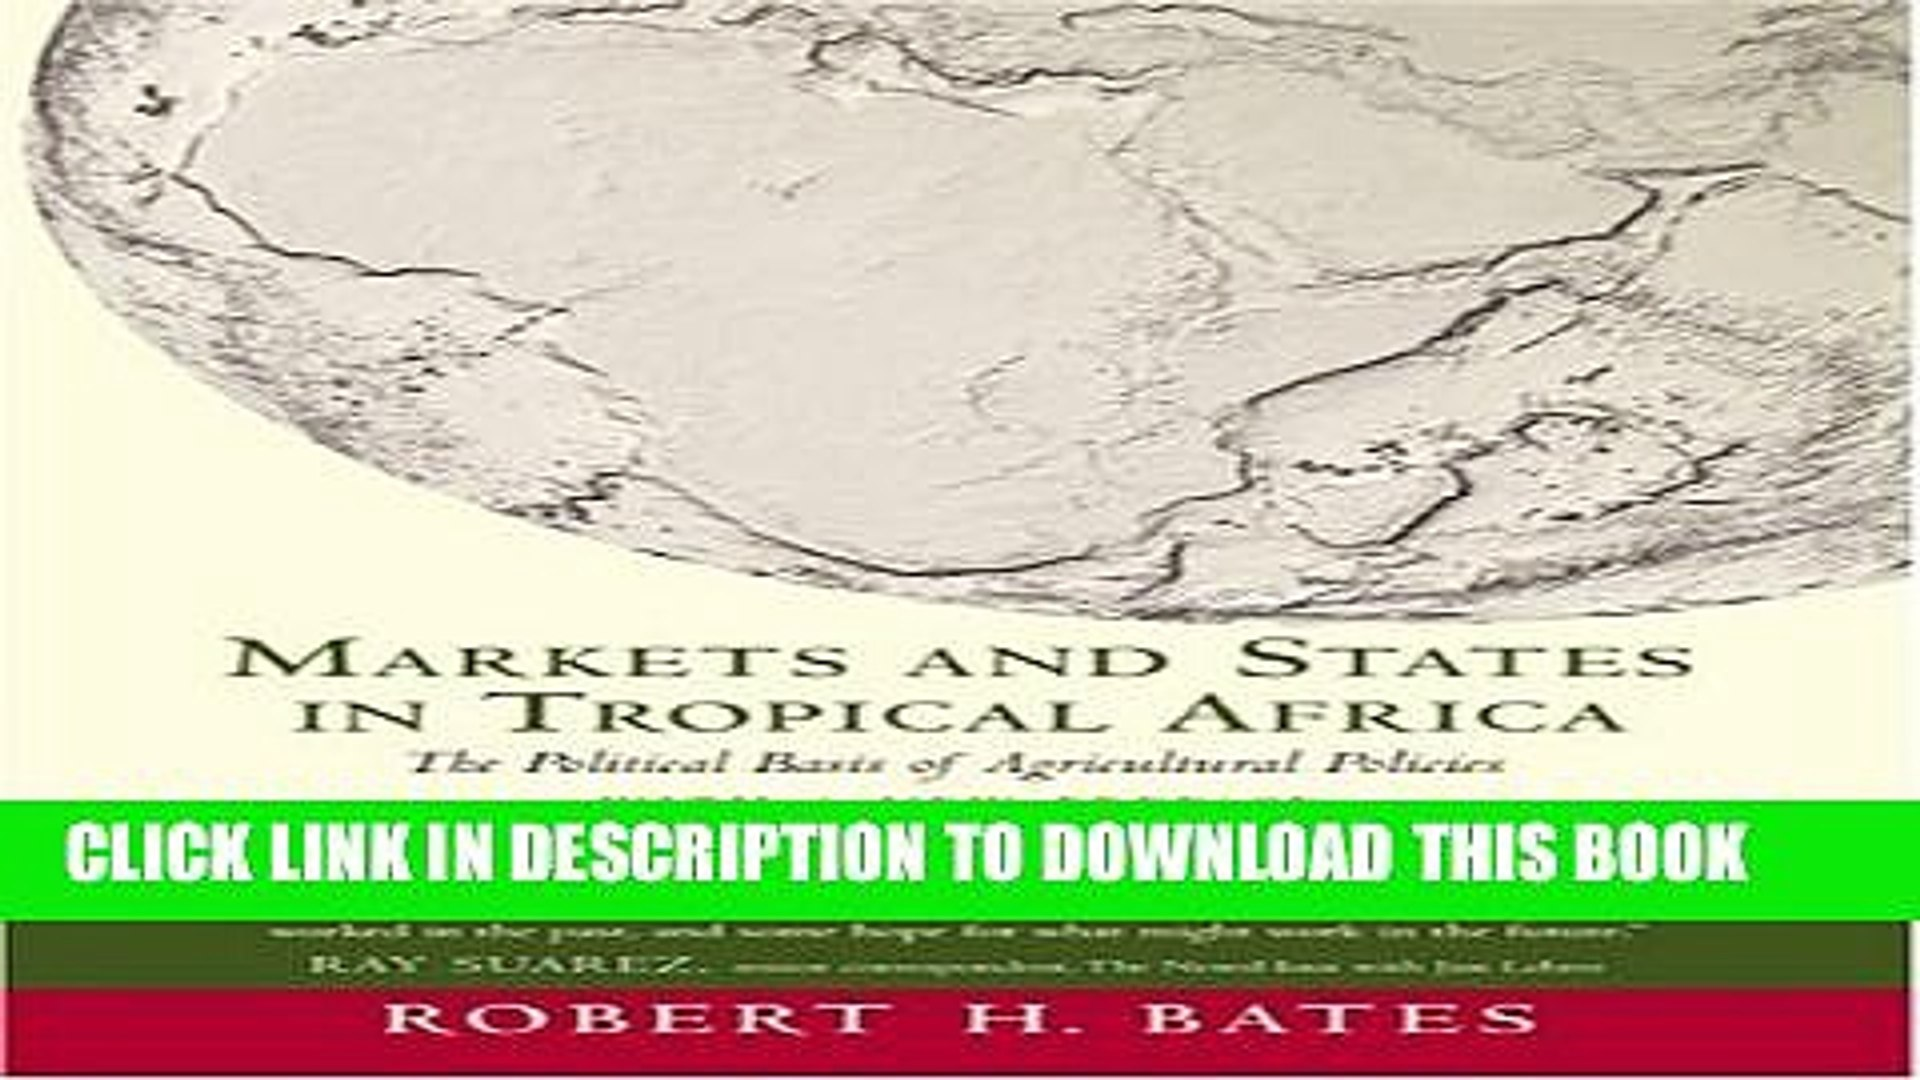 [PDF] Markets and States in Tropical Africa: The Political Basis of Agricultural Policies: With a